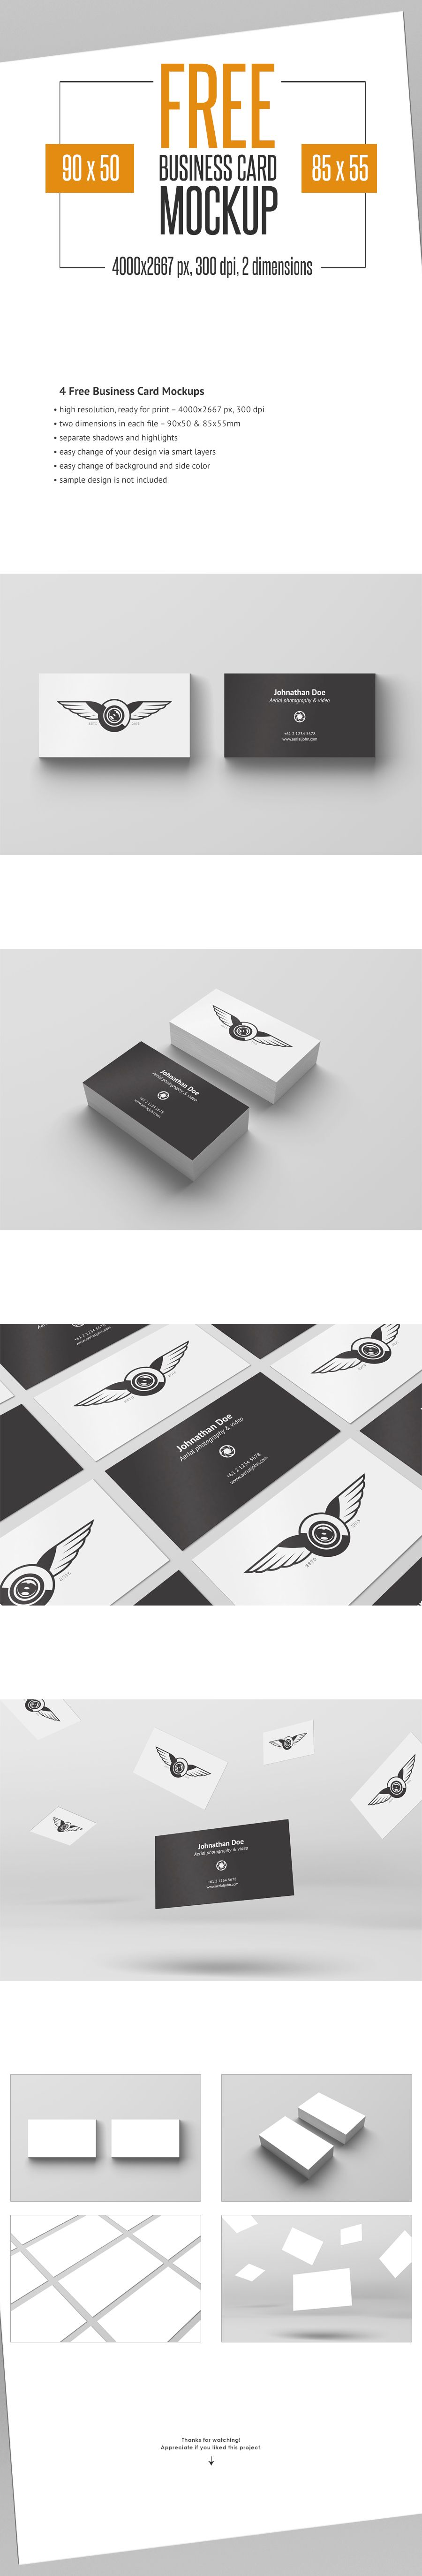 4 free business card mockup on behance mockups pinterest 4 free business card mockup on behance reheart Image collections